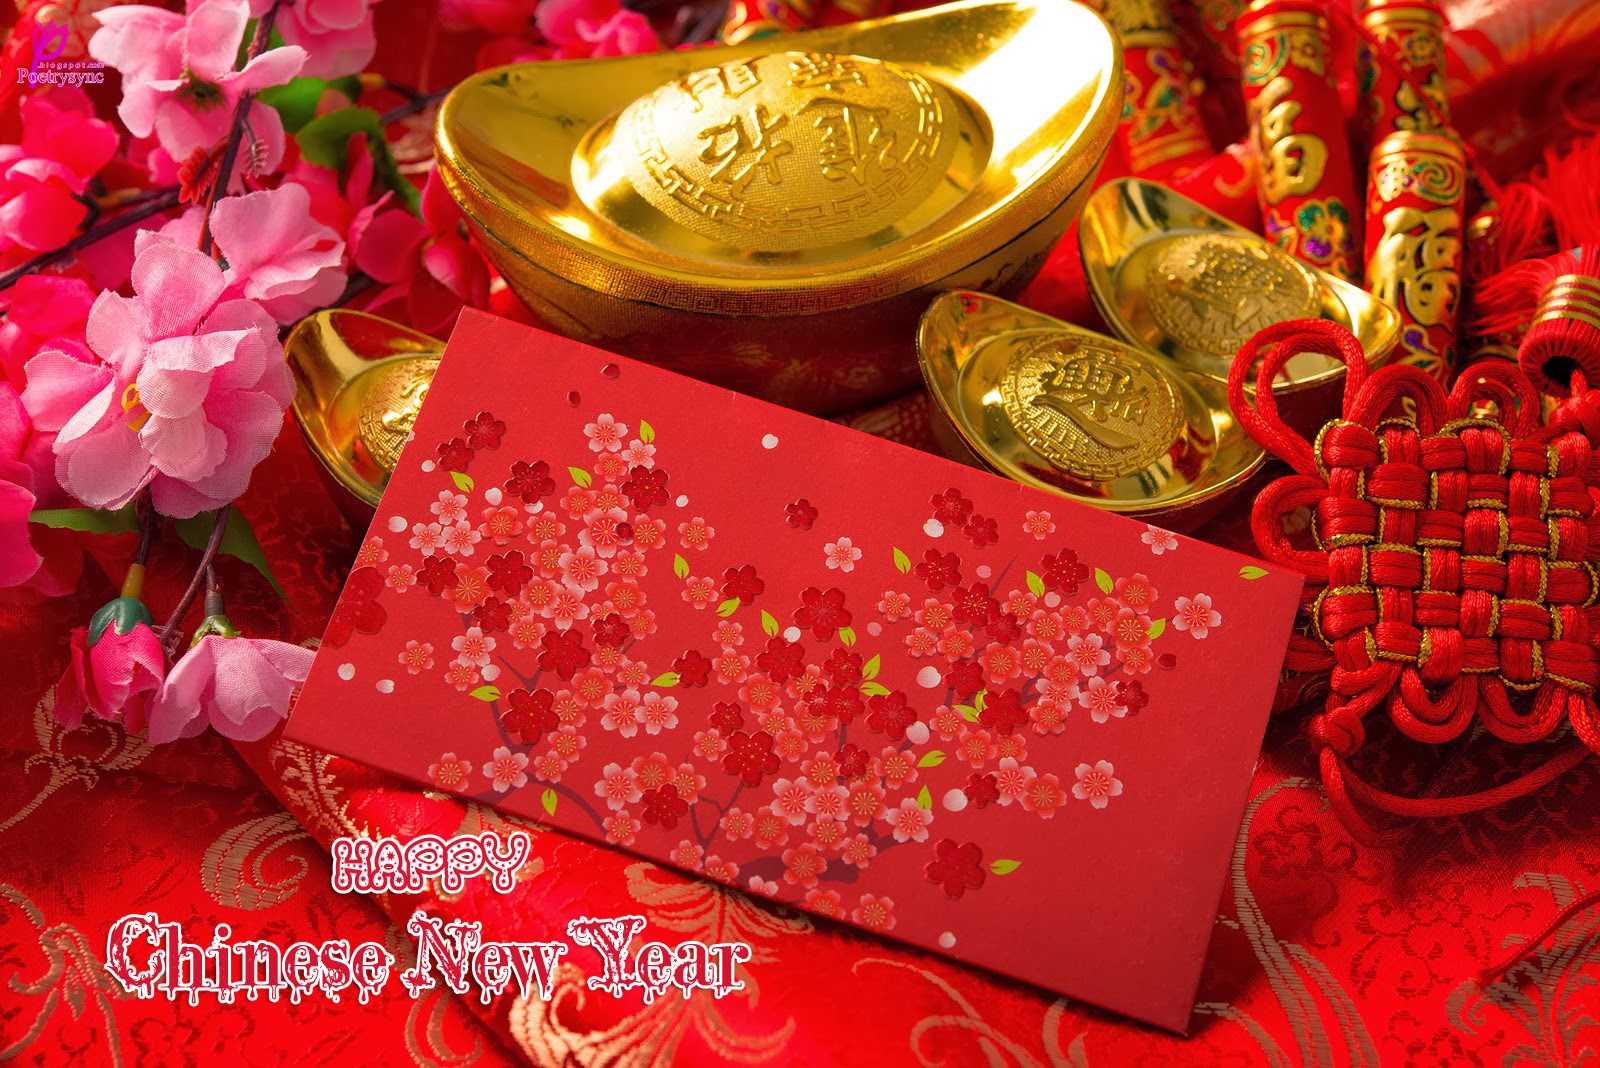 Happy Lunar New Year 2014 Tet New Year 2014 Happy Chinese New Year 1600x1068